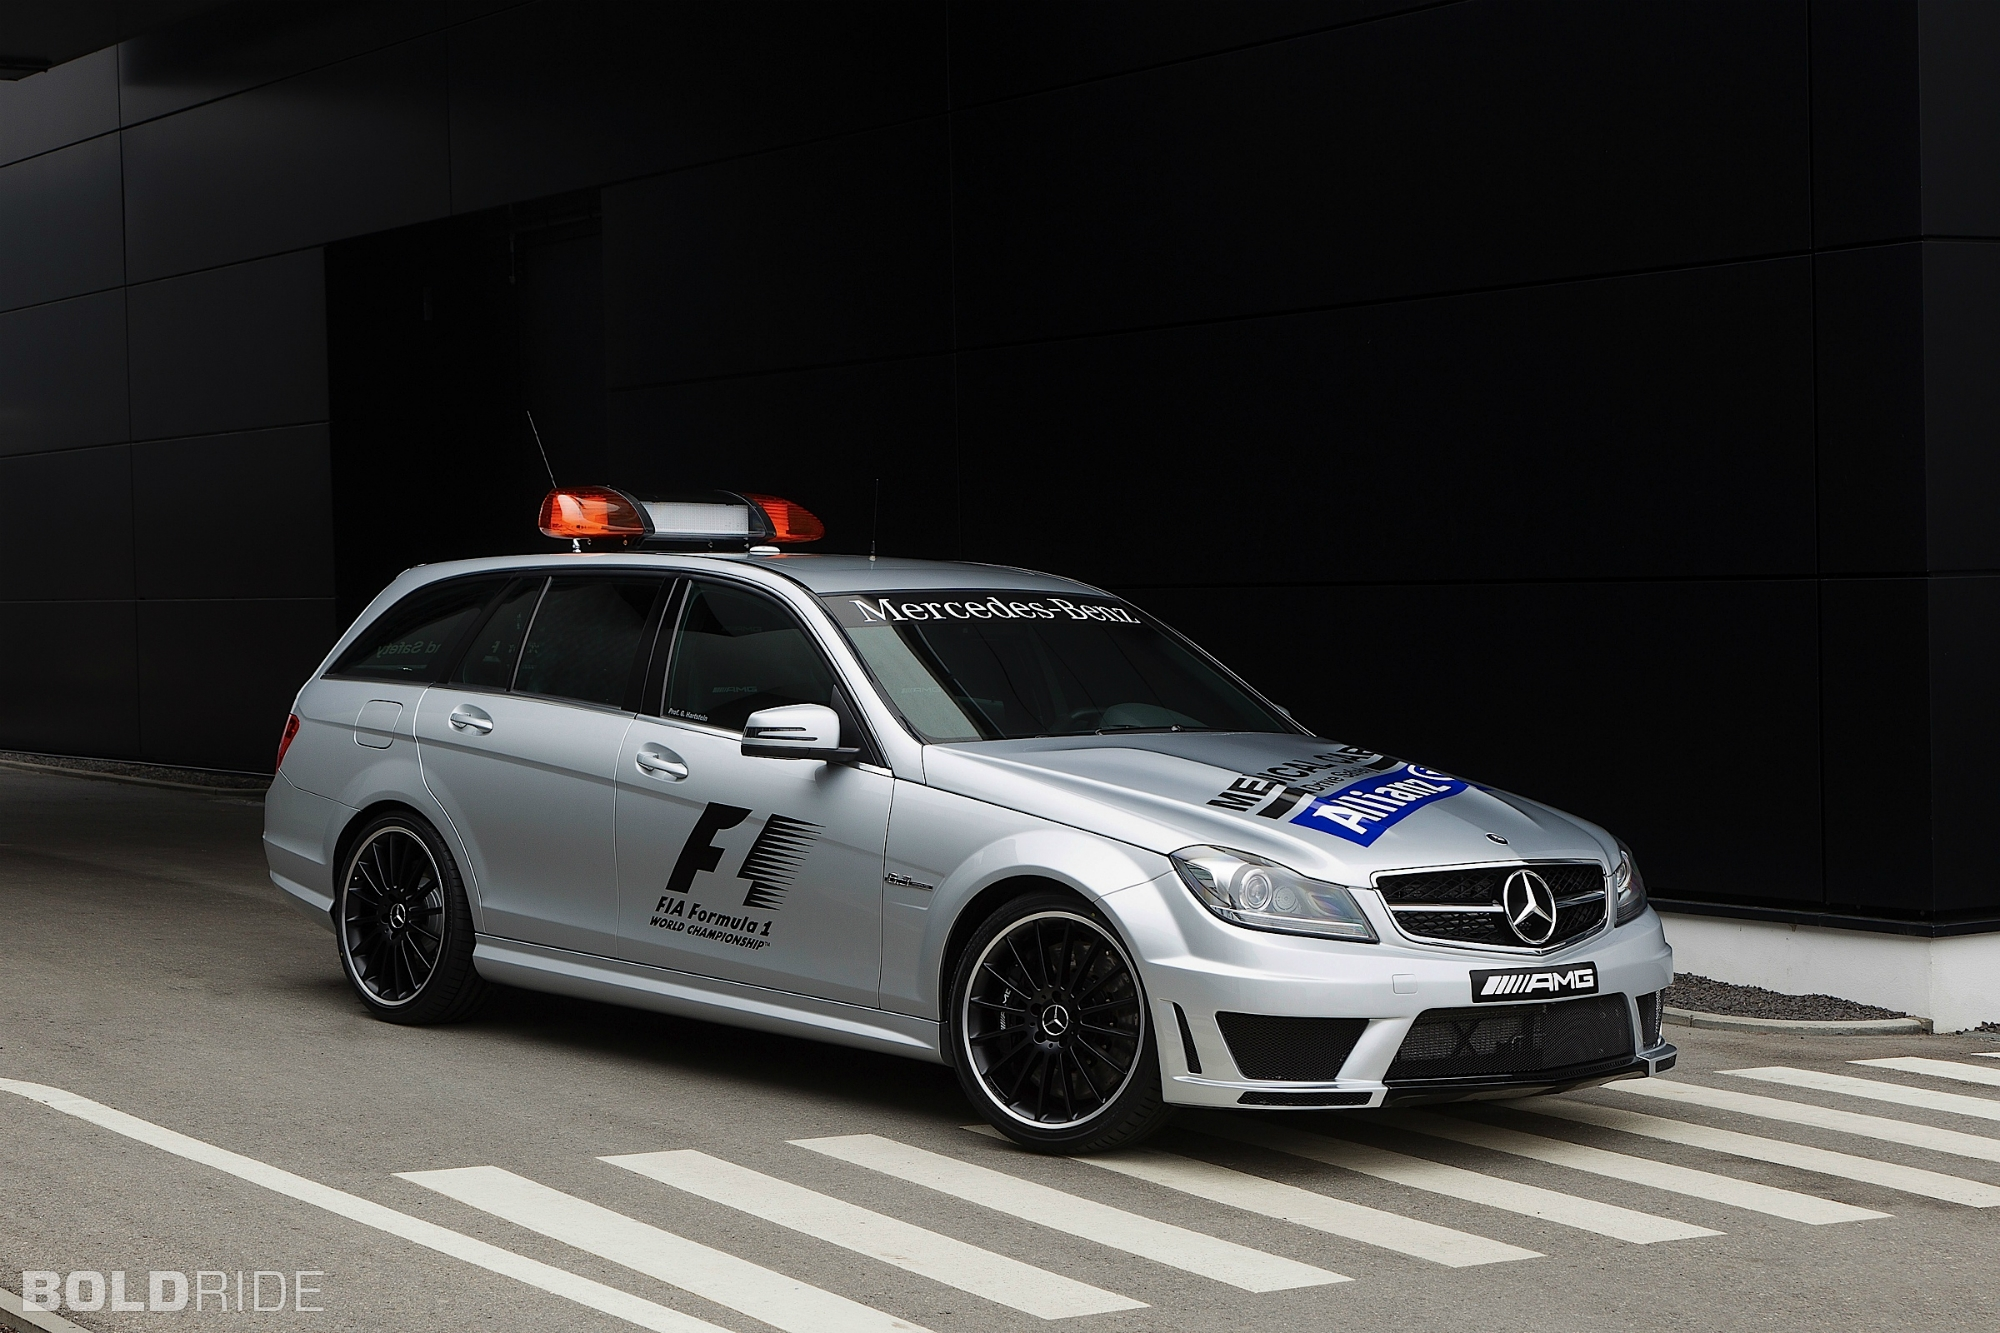 2012 mercedes benz c63 amg estate car photos catalog 2018 for Mercedes benz estate cars